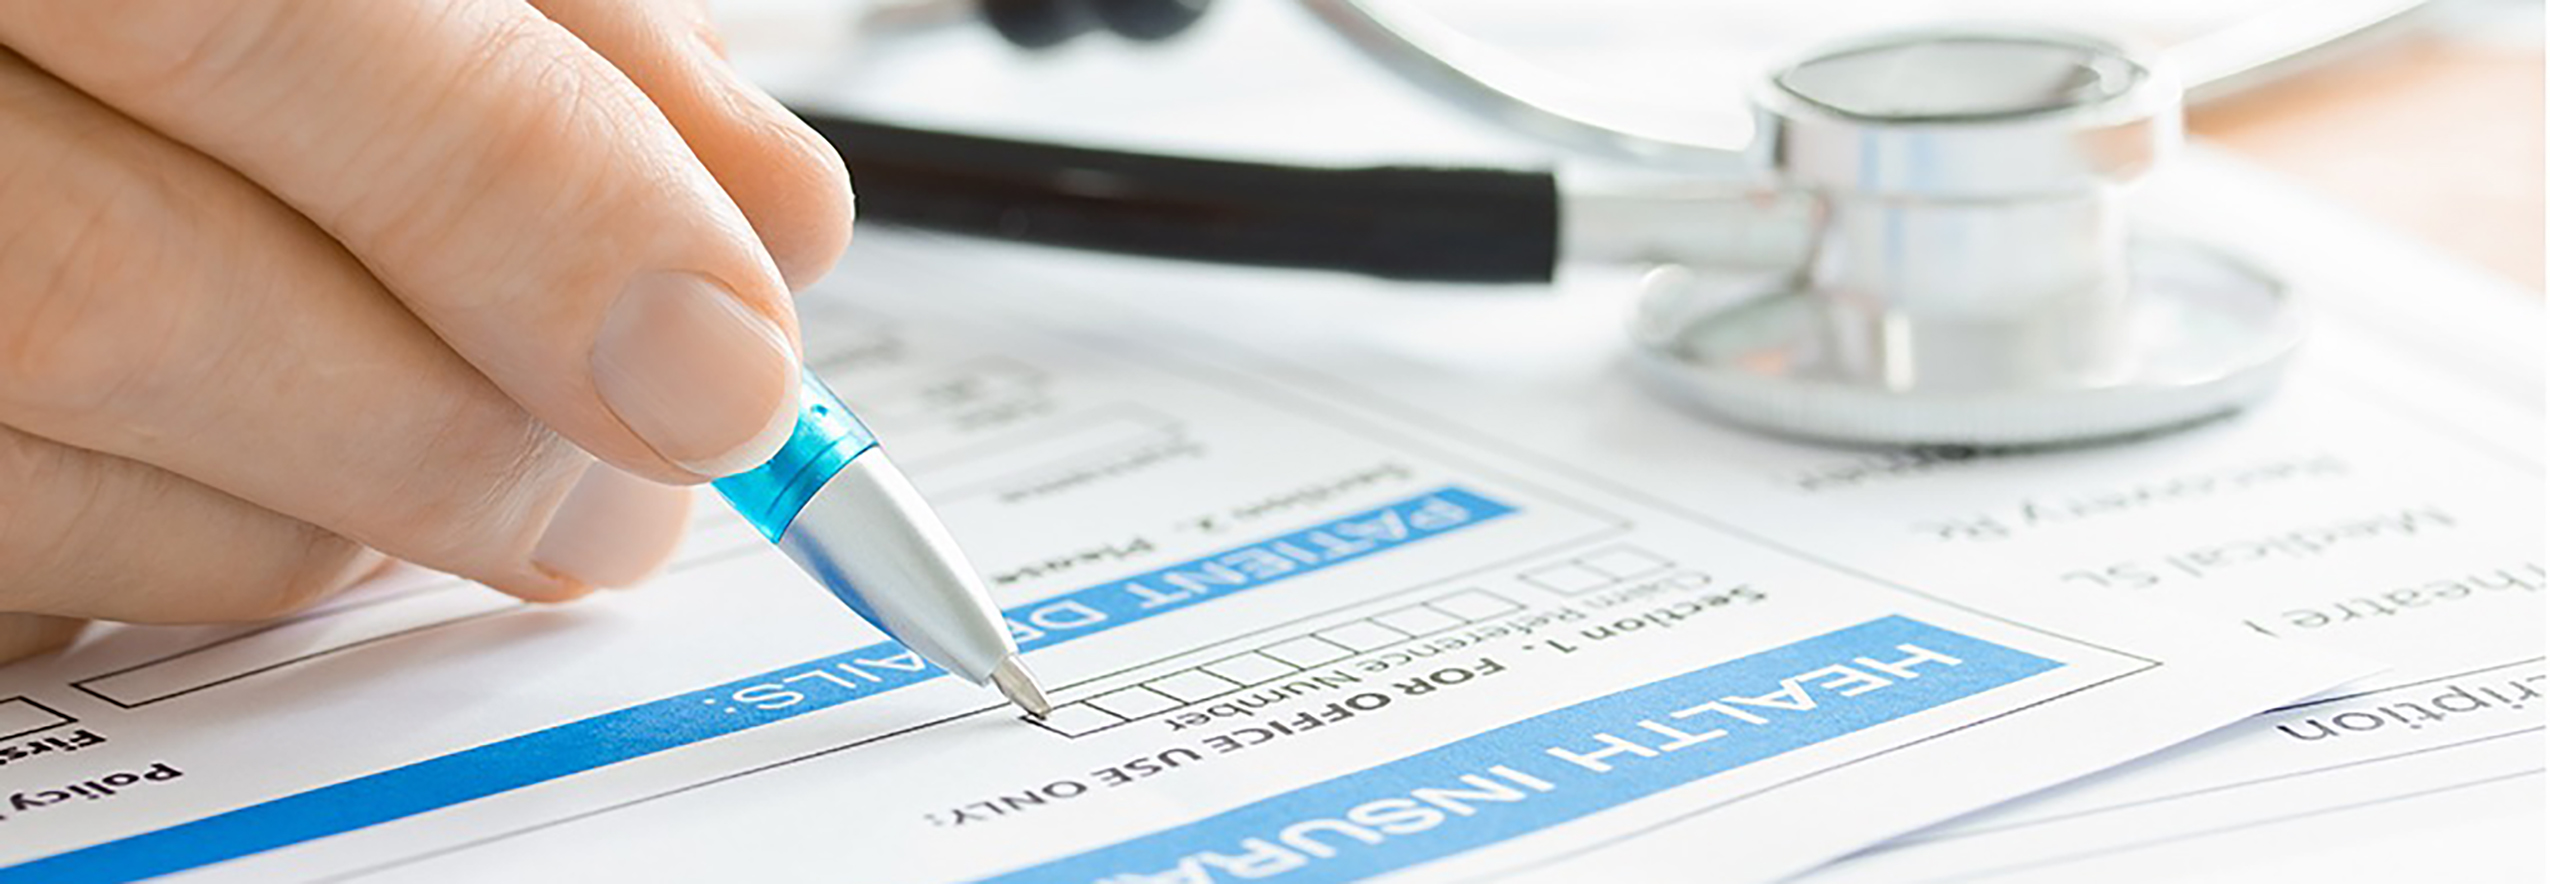 Healthcare Cost Reporting